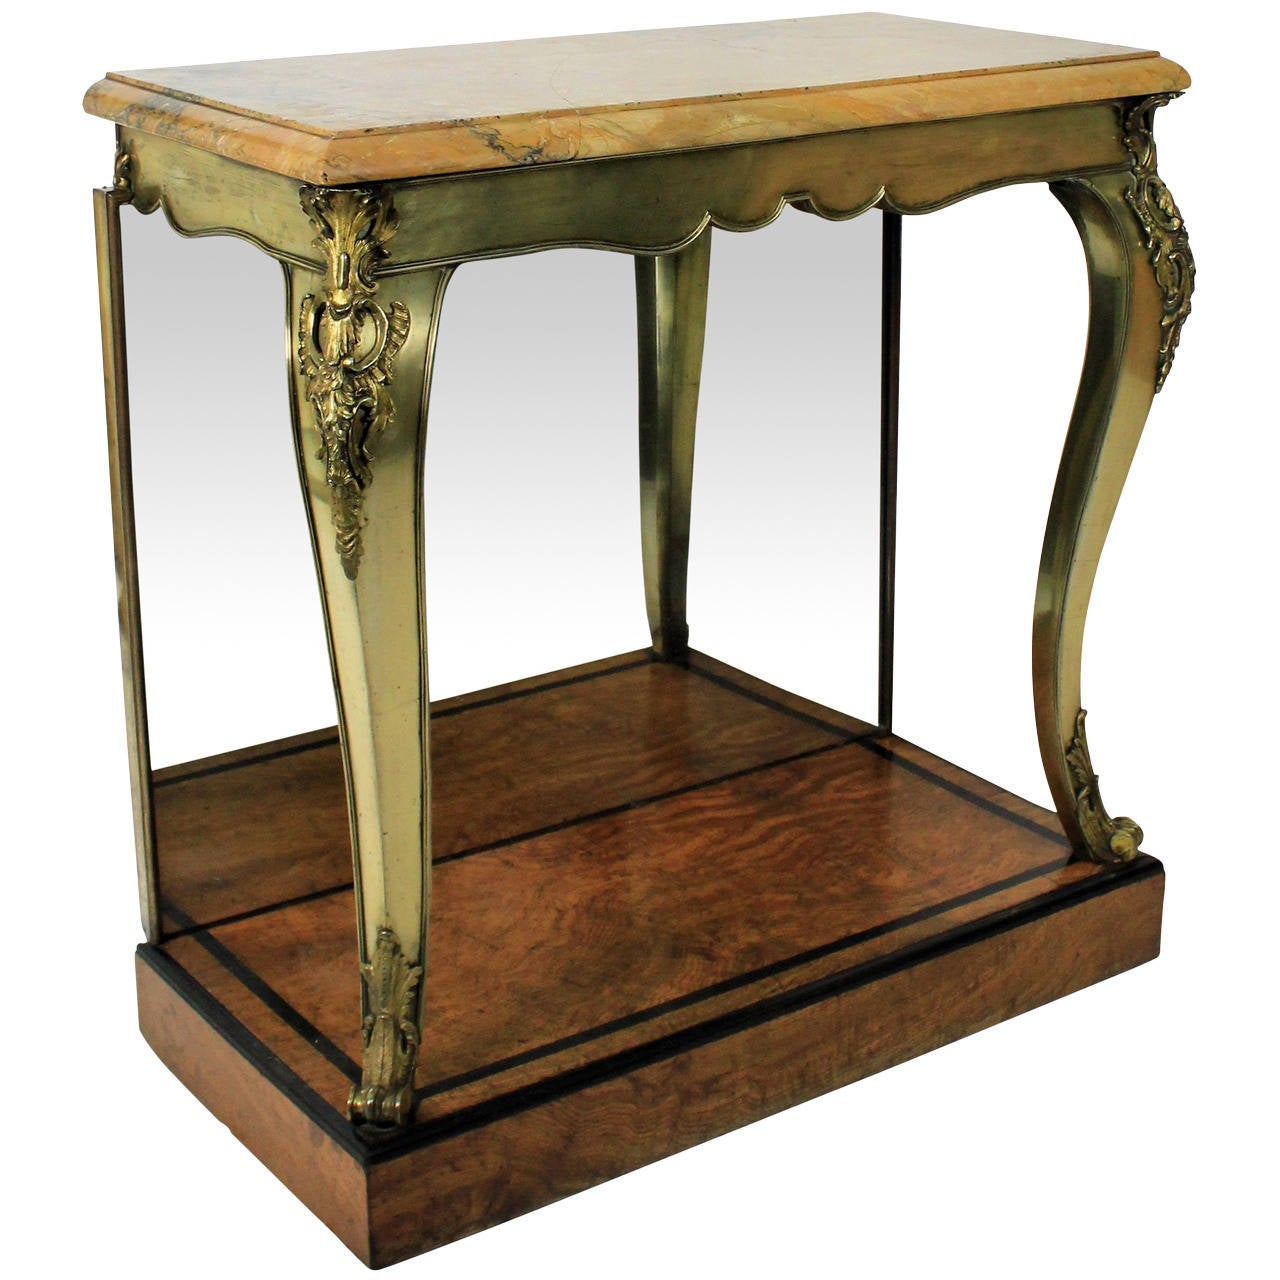 Fine english console table in the manner of george bullock for England table